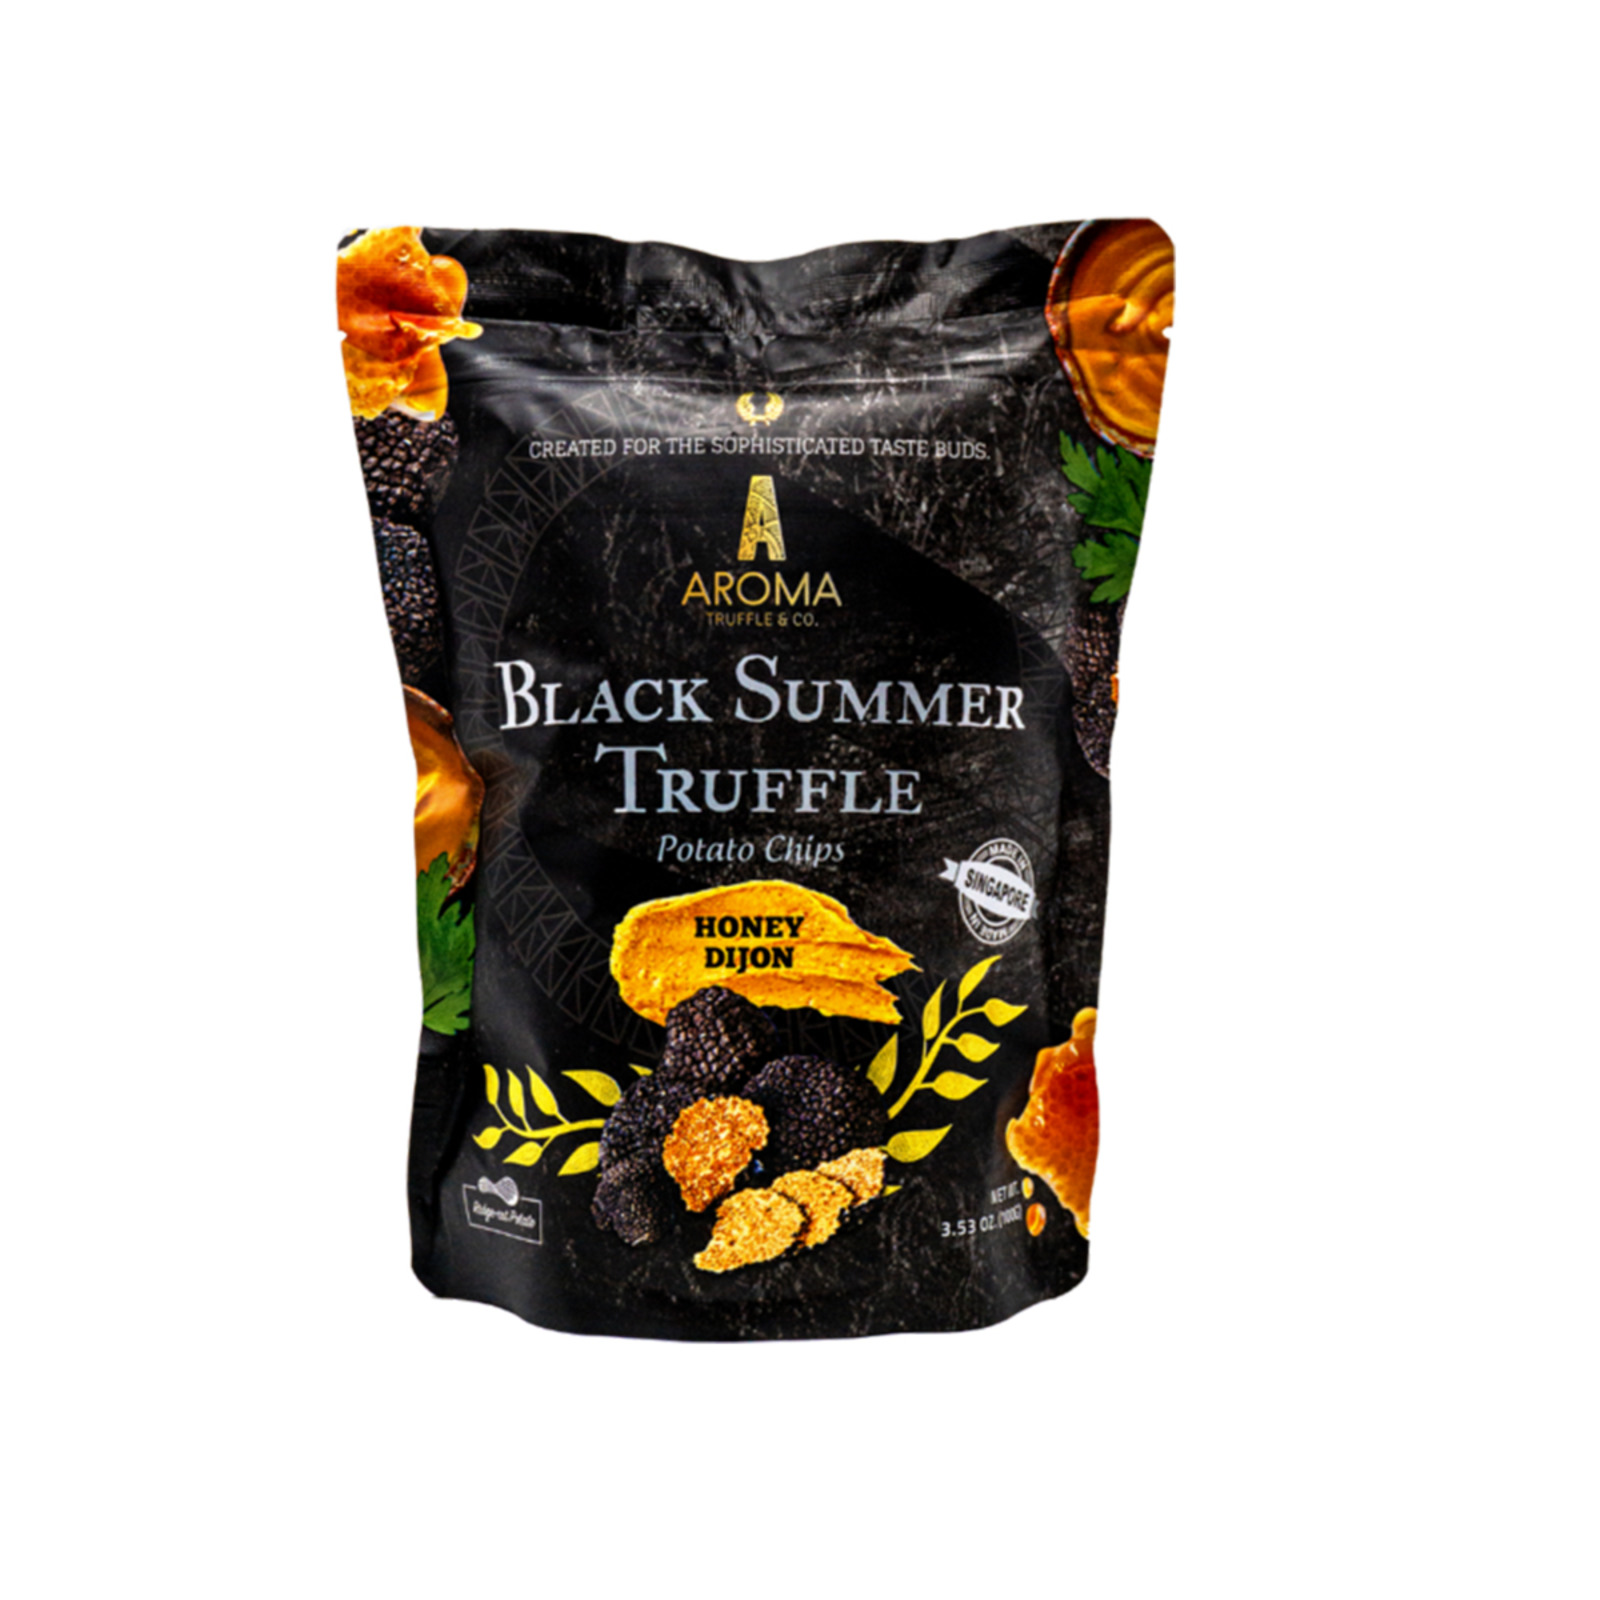 Aroma Black Summer Truffle Potato Chips - Honey Dijon